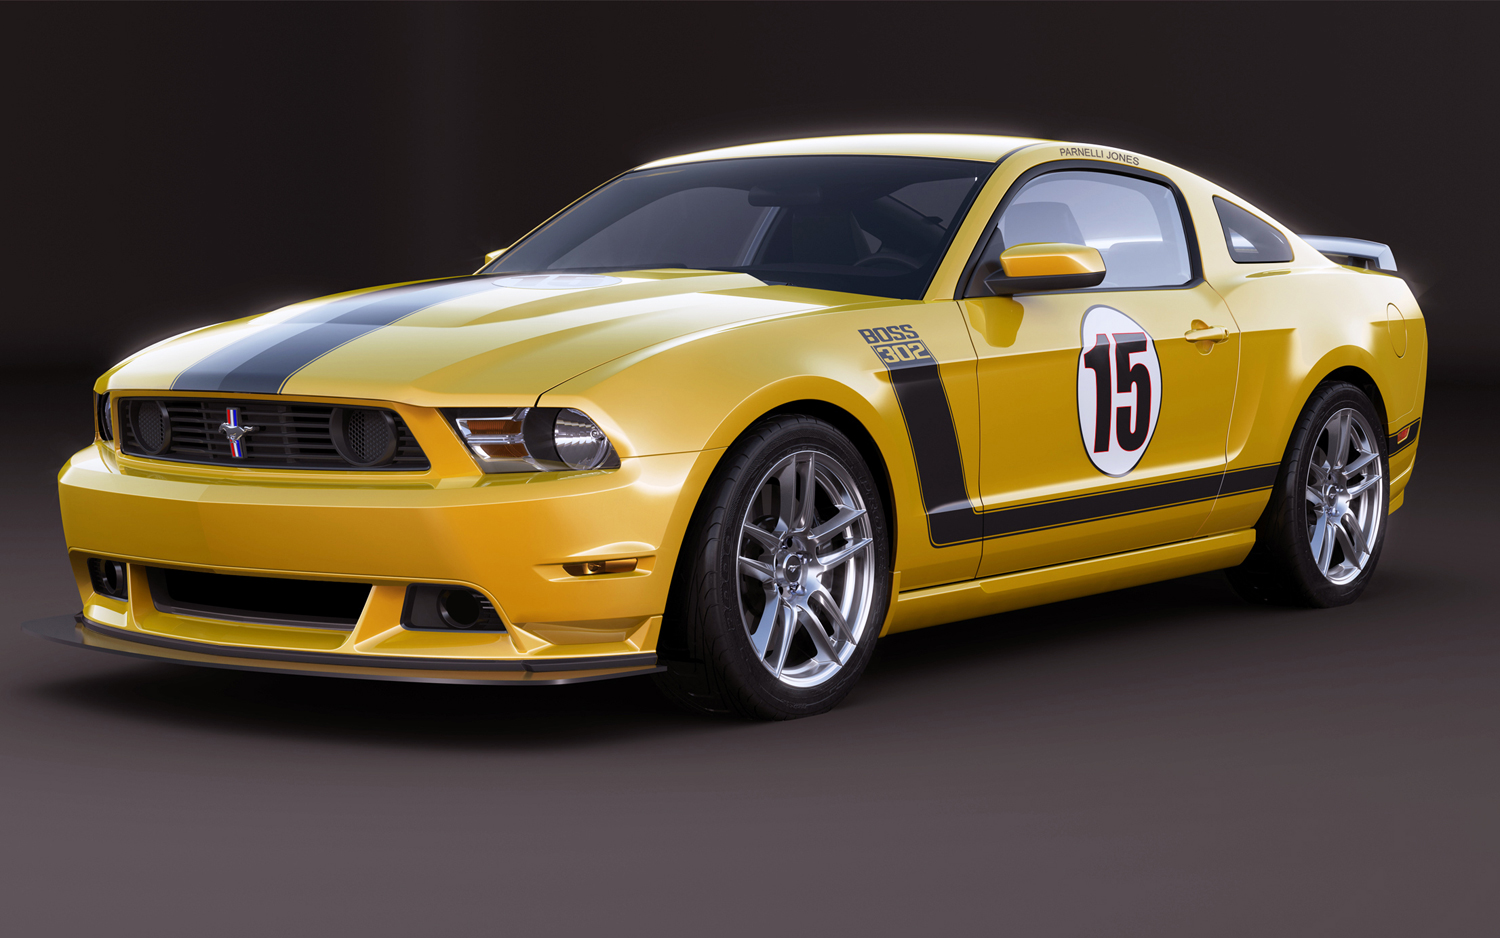 Ford auctions customized 2012 mustang boss 302 for charity motortrend